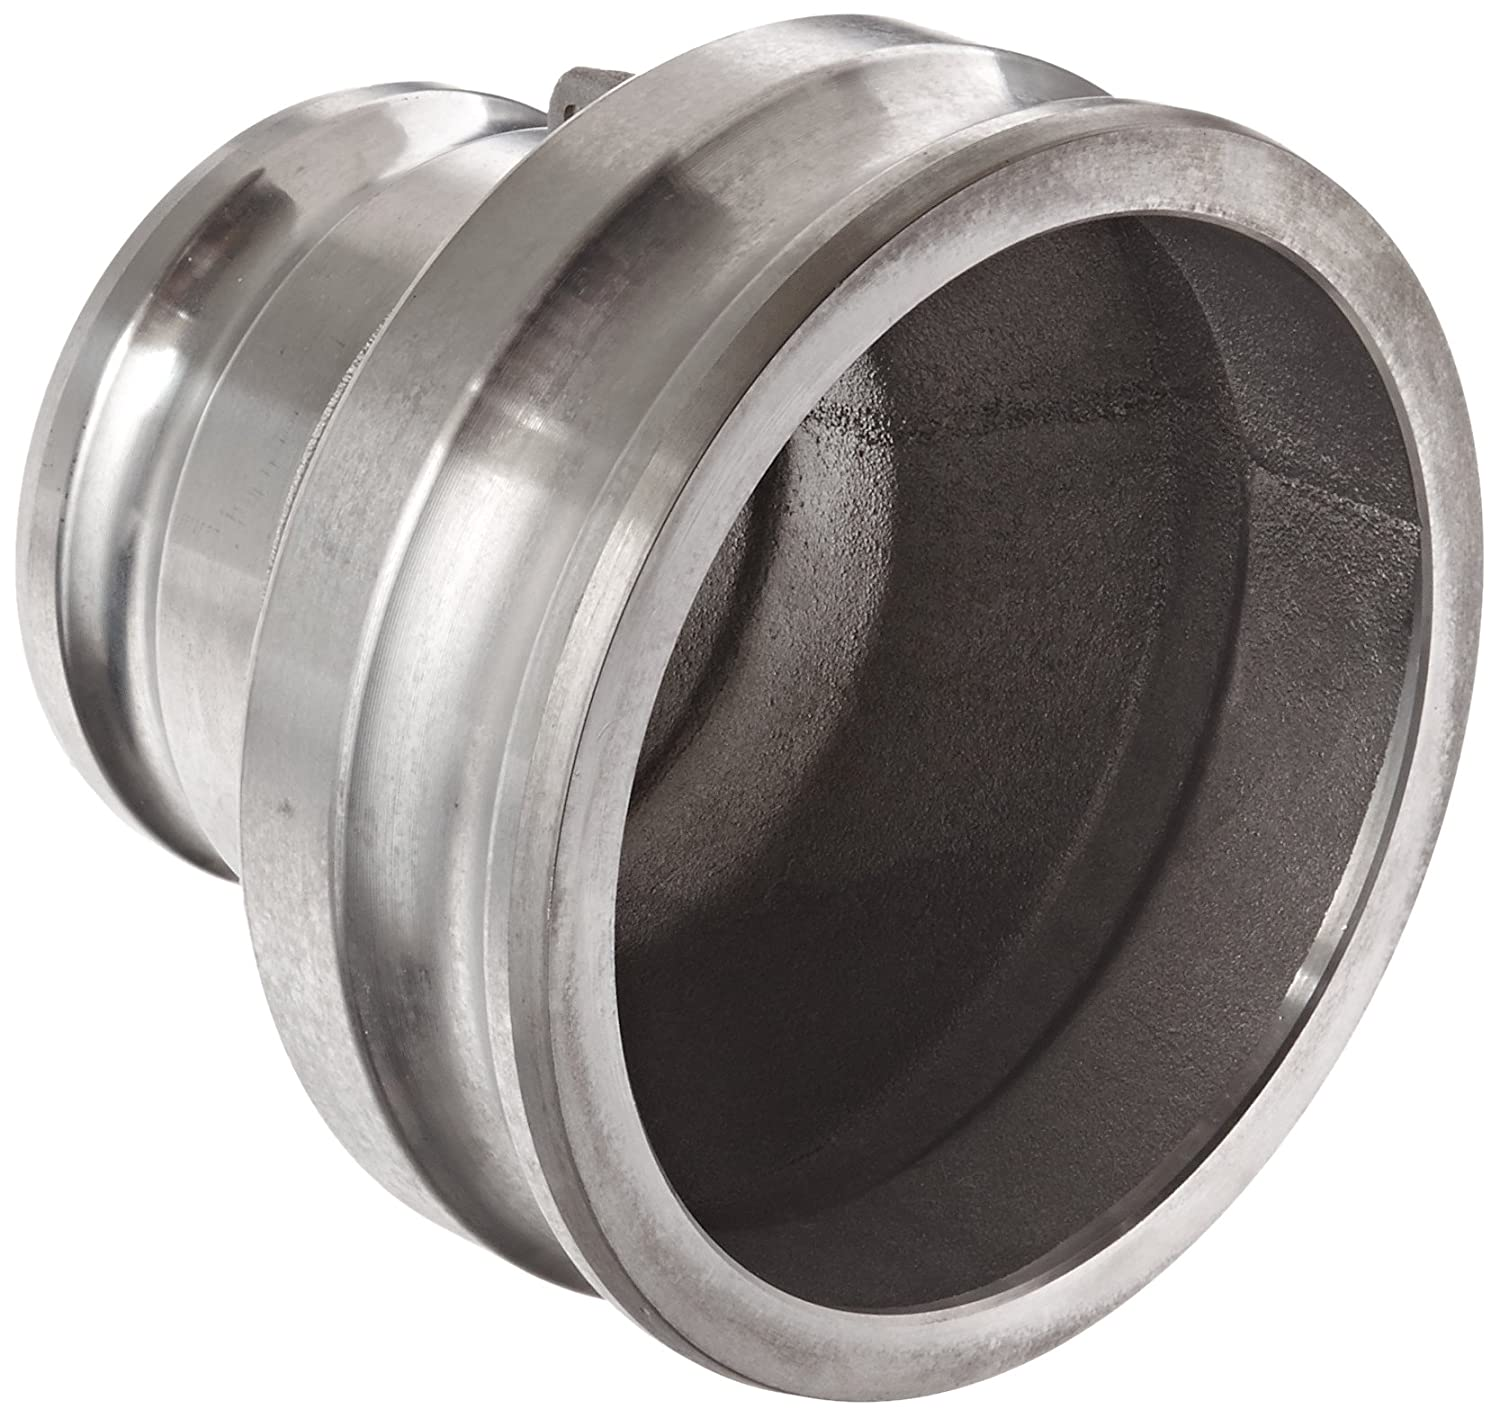 Dixon 2040-AA-AL Aluminum Cam and Groove Hose Fitting Reducing Spool Adapter 2 Plug x 4 Plug